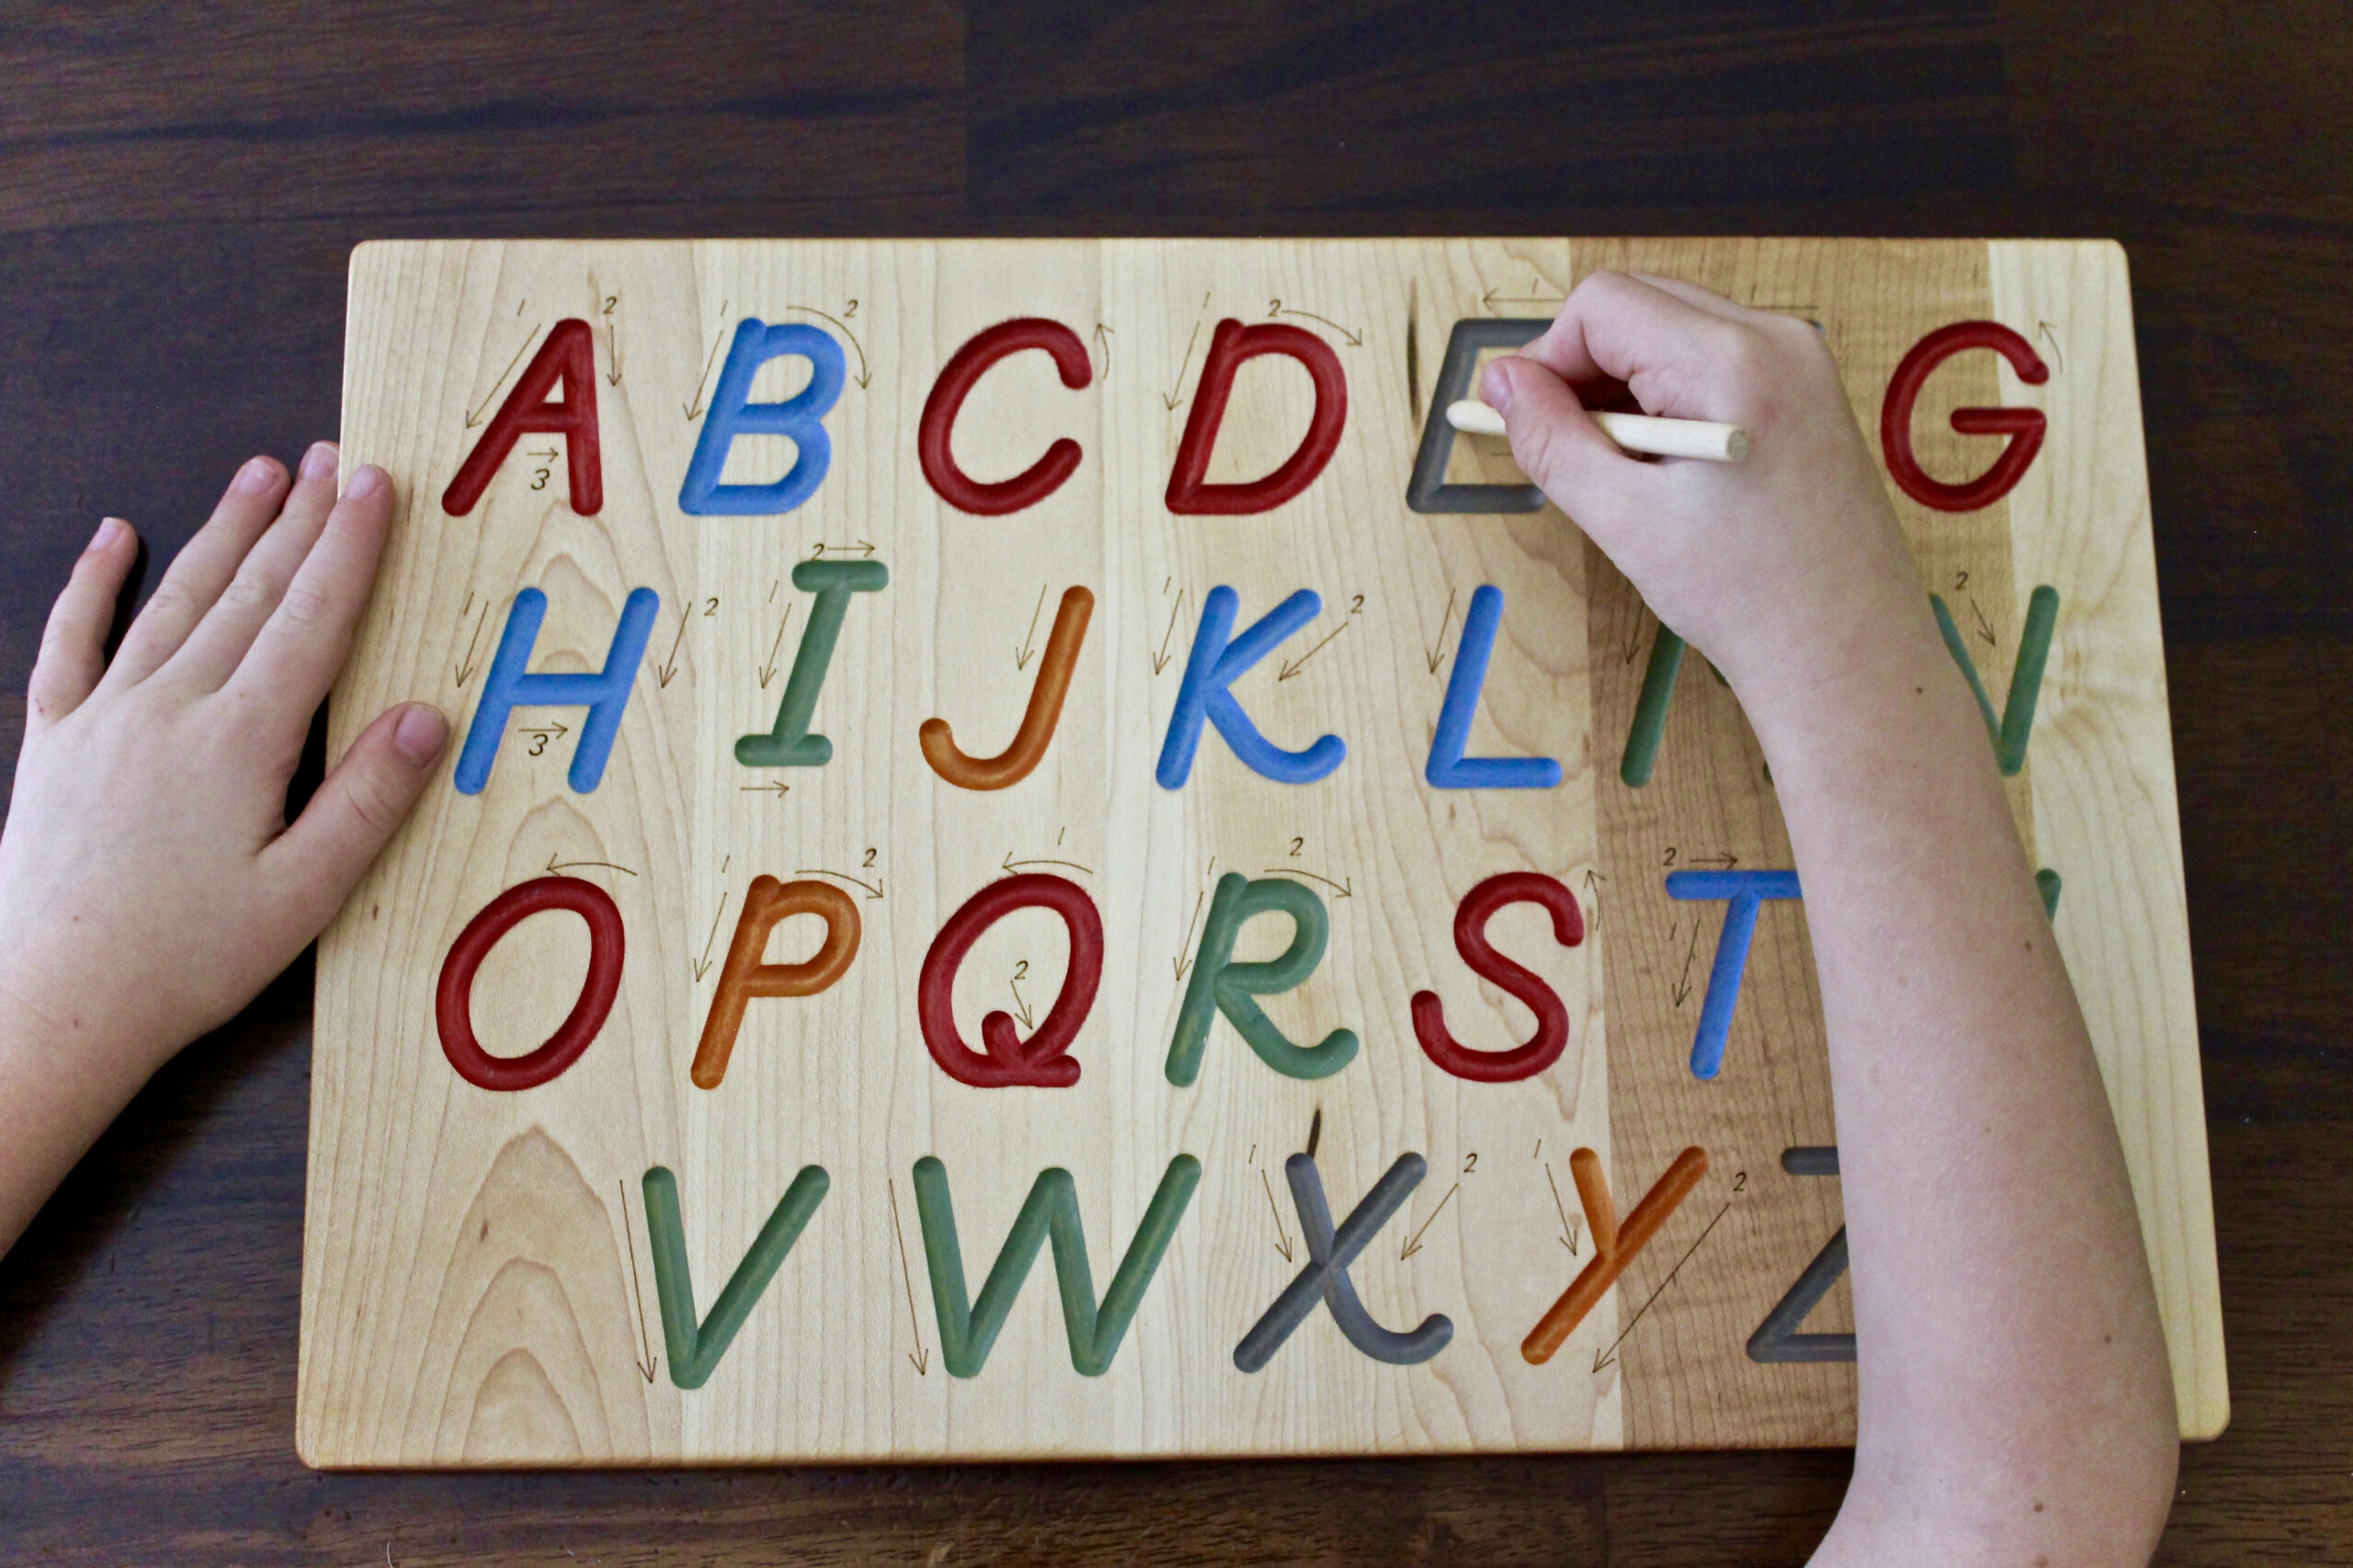 Buy A Hand Crafted Wooden Alphabet Tracing Board, Made To with regard to Tracing Letters With Fingers